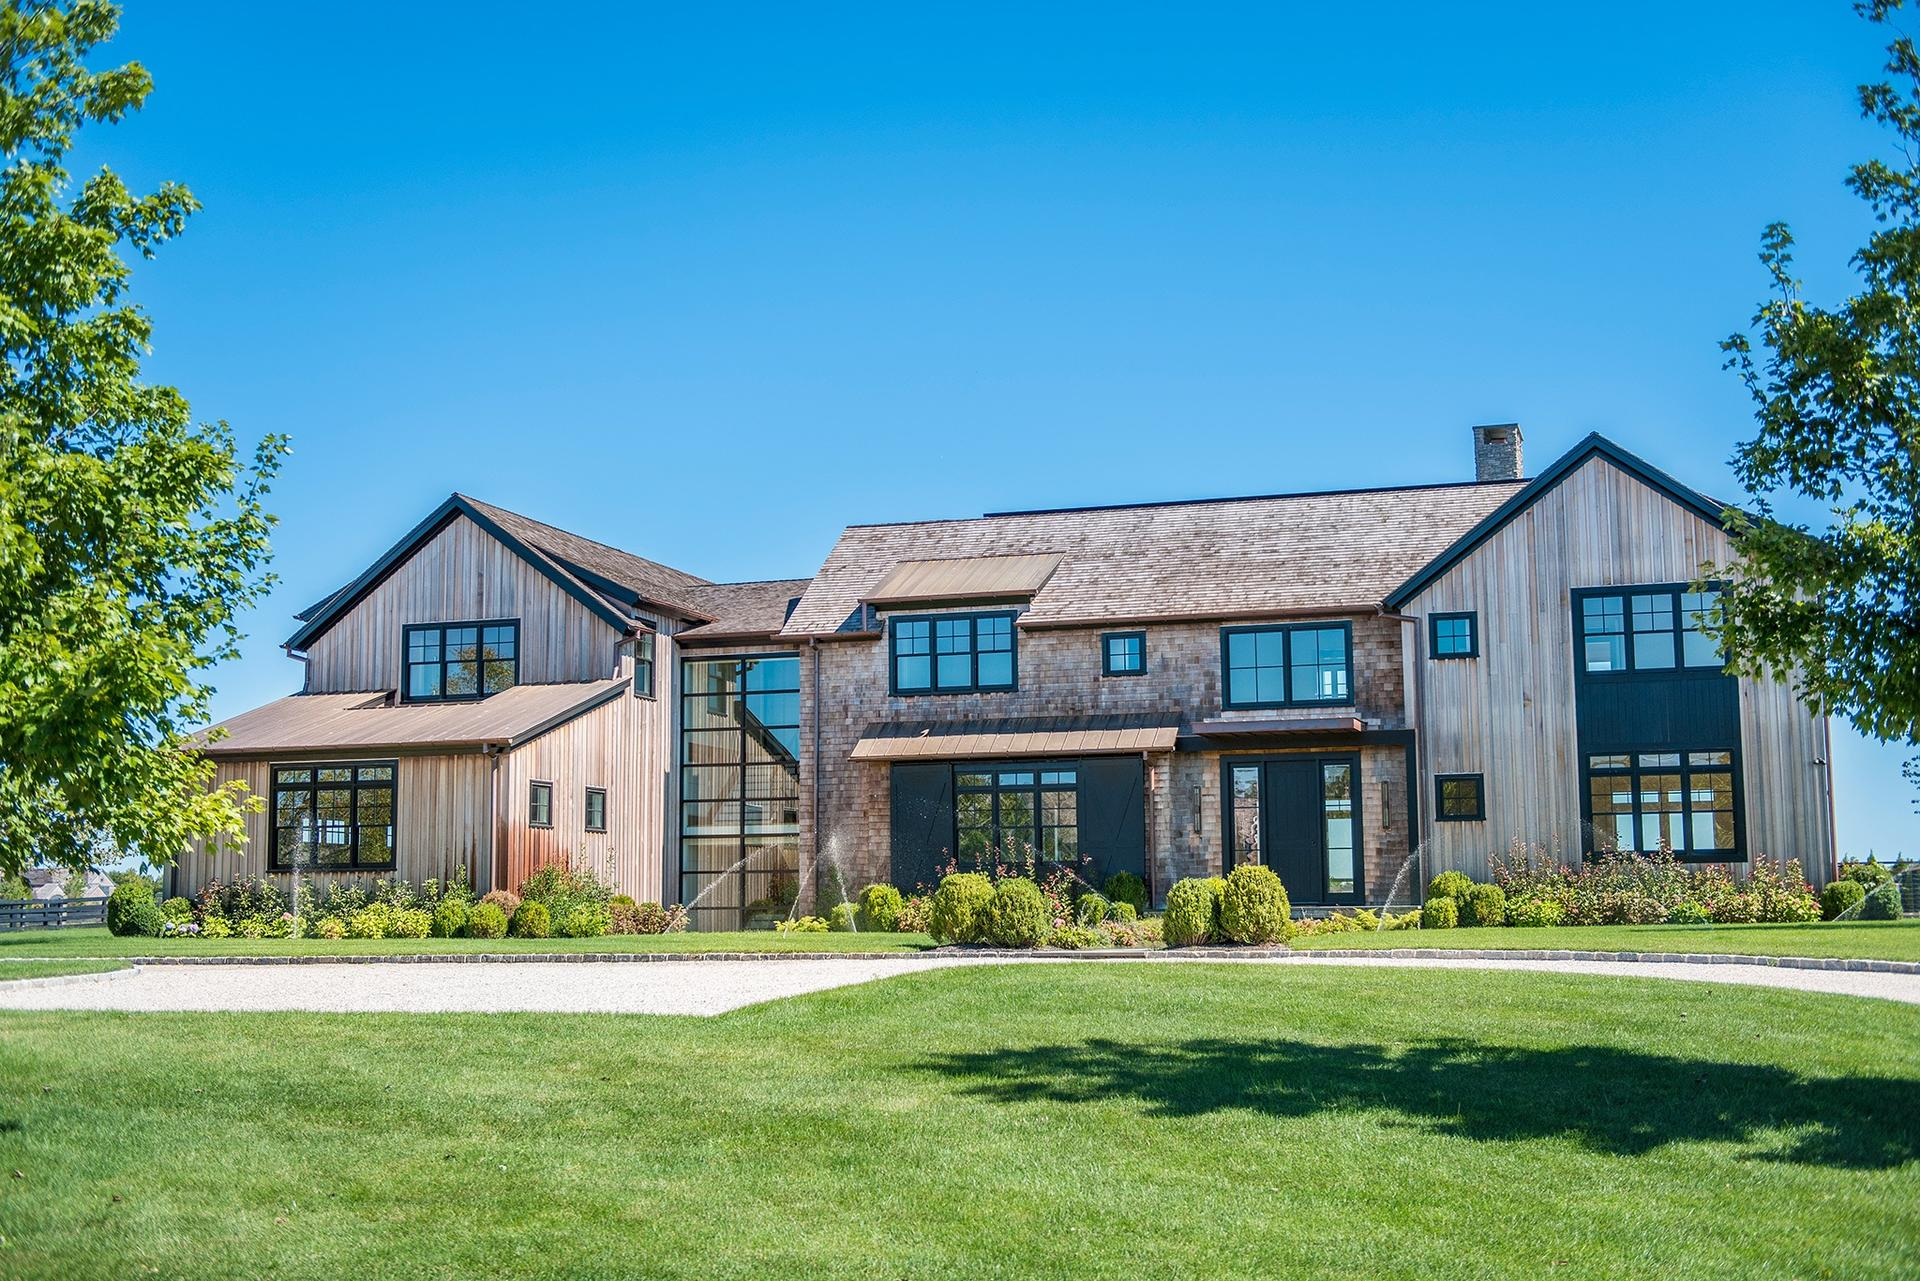 Single Family Home for Sale at Private Estate In An Equestrian Setting 4 Polo Court (Lot 5), Bridgehampton, New York